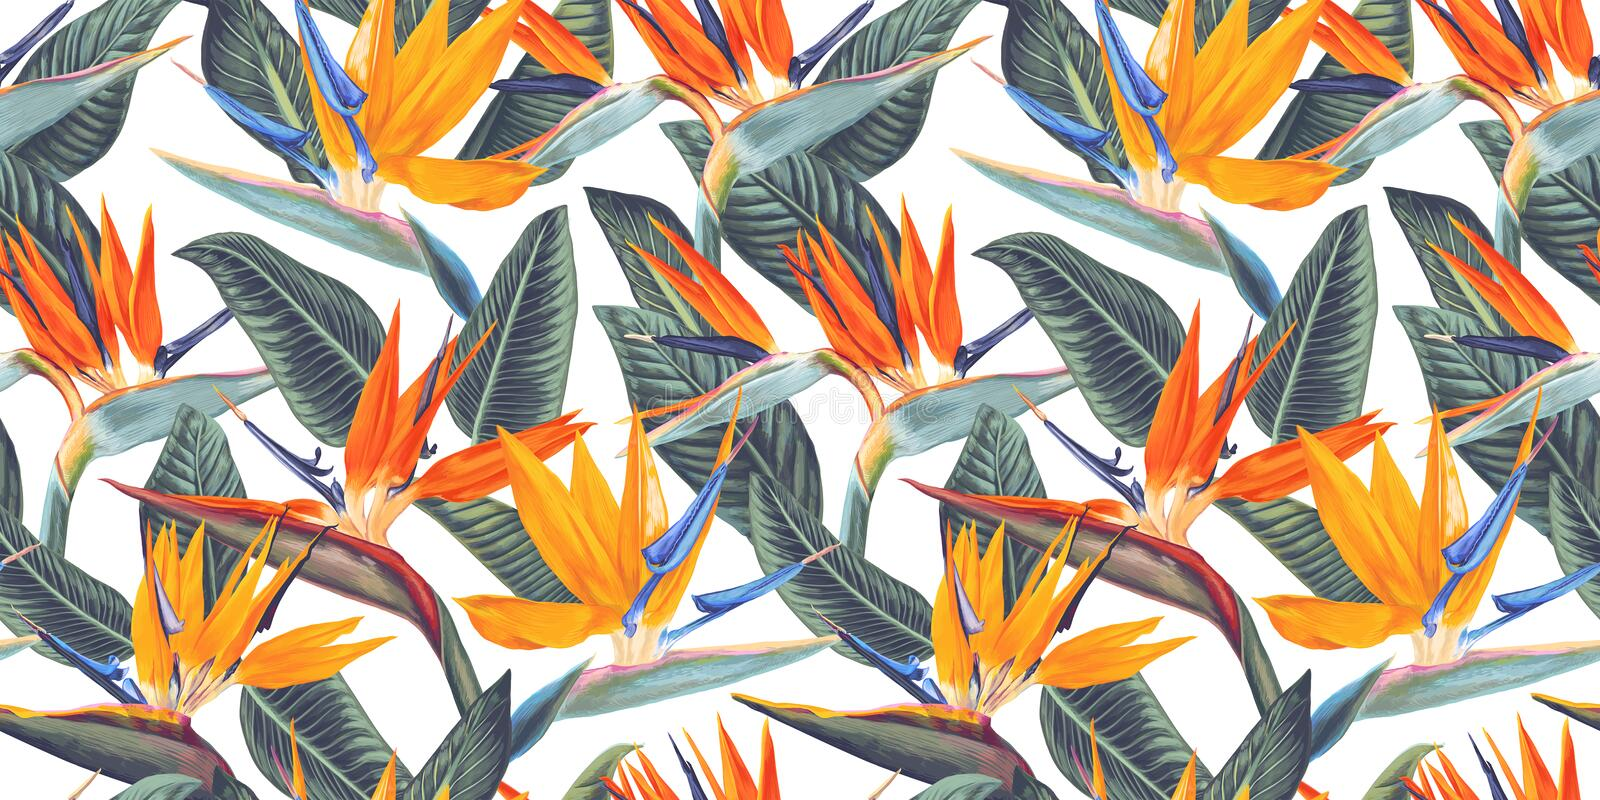 ,Seamless pattern with tropical flowers and leaves of Strelitzia, called crane flower or bird of paradise. royalty free illustration